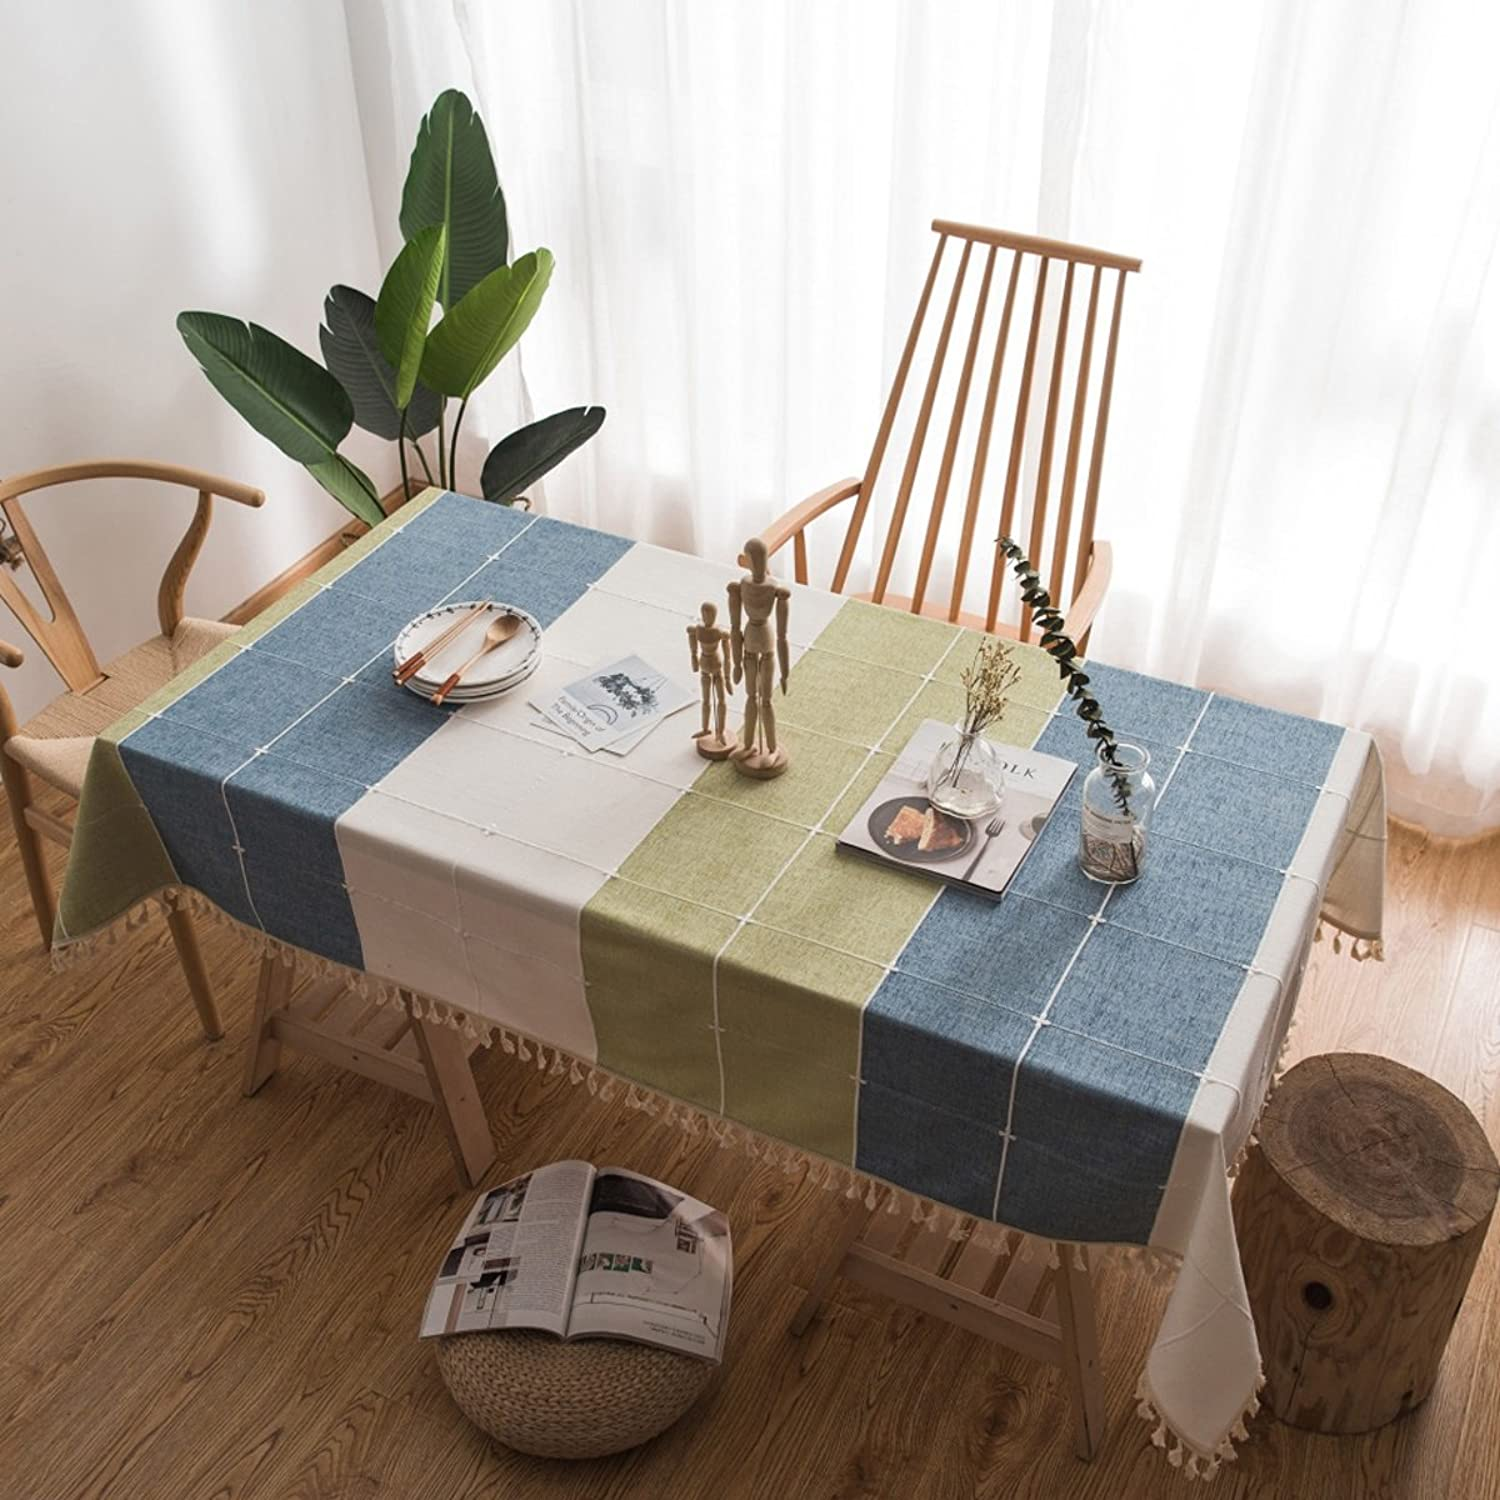 DONG Tablecloth Cloth Runners Tea Table Cloth Cotton Linen Lace Linen TV Cabinet Cloth Rectangular Home Use Home Decoration (color   bluee, Size   140  200cm)